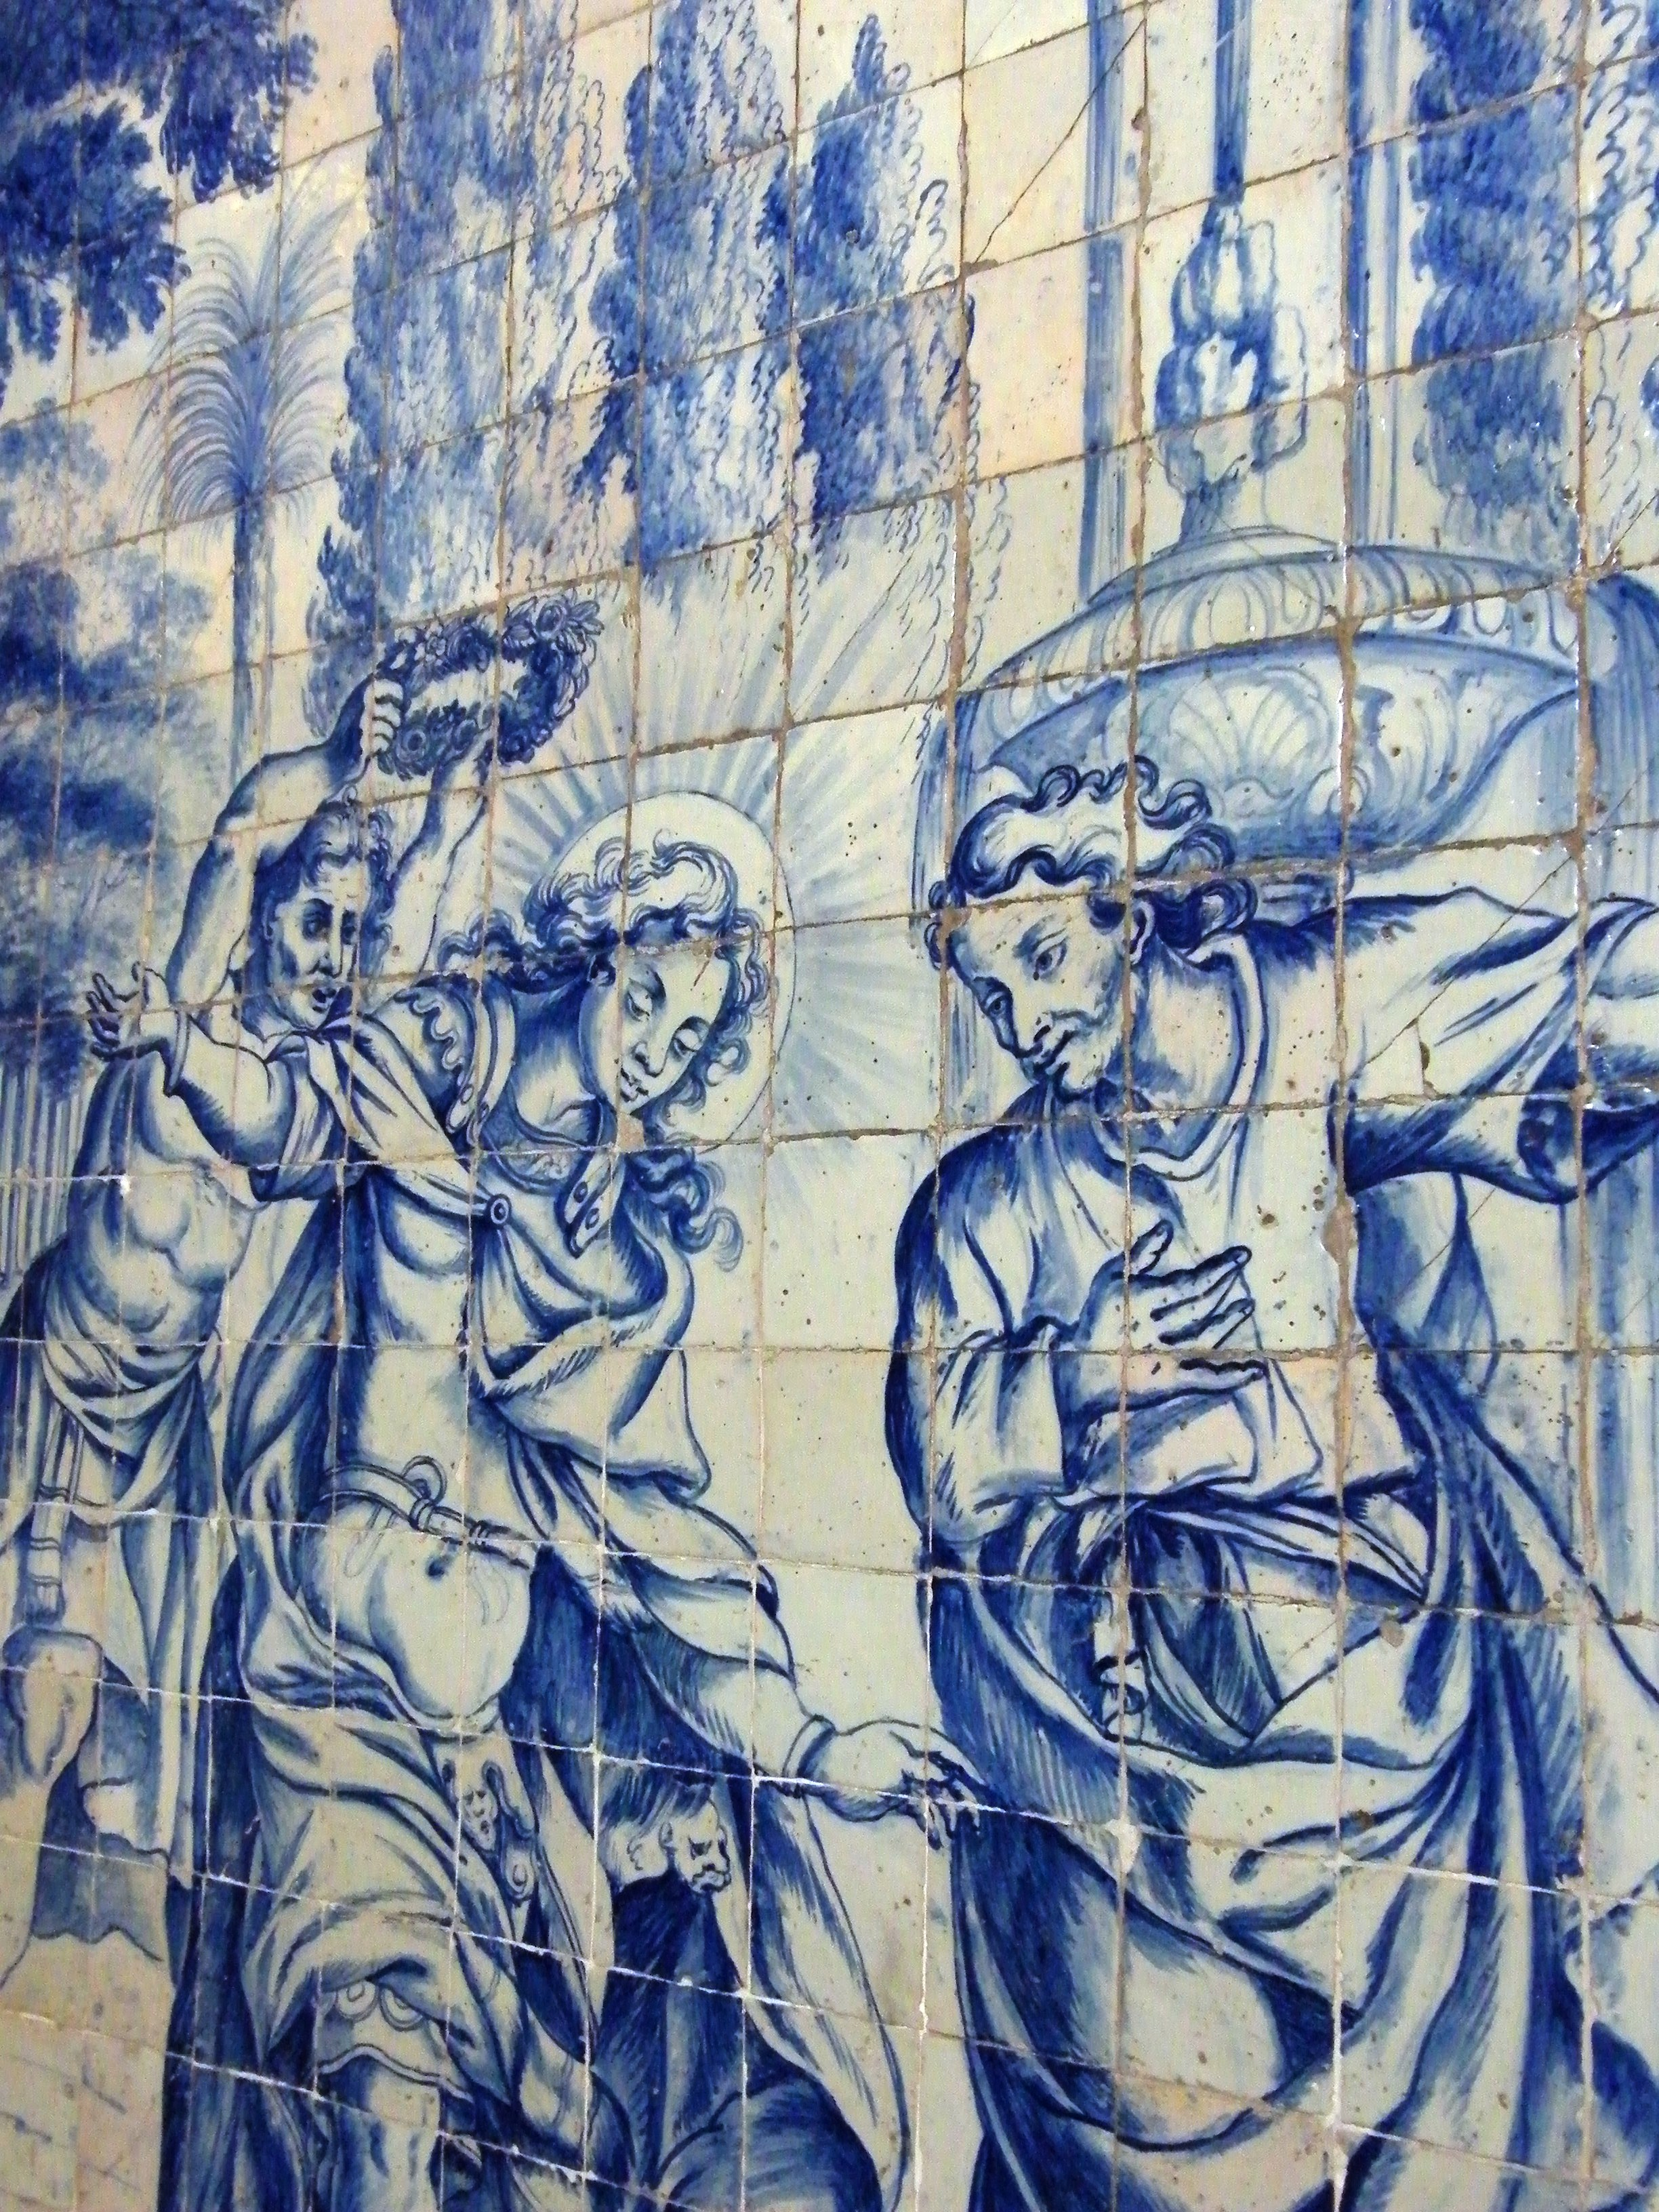 Detail of late 17th century tile panel in Igreja de Sao Victor in Braga